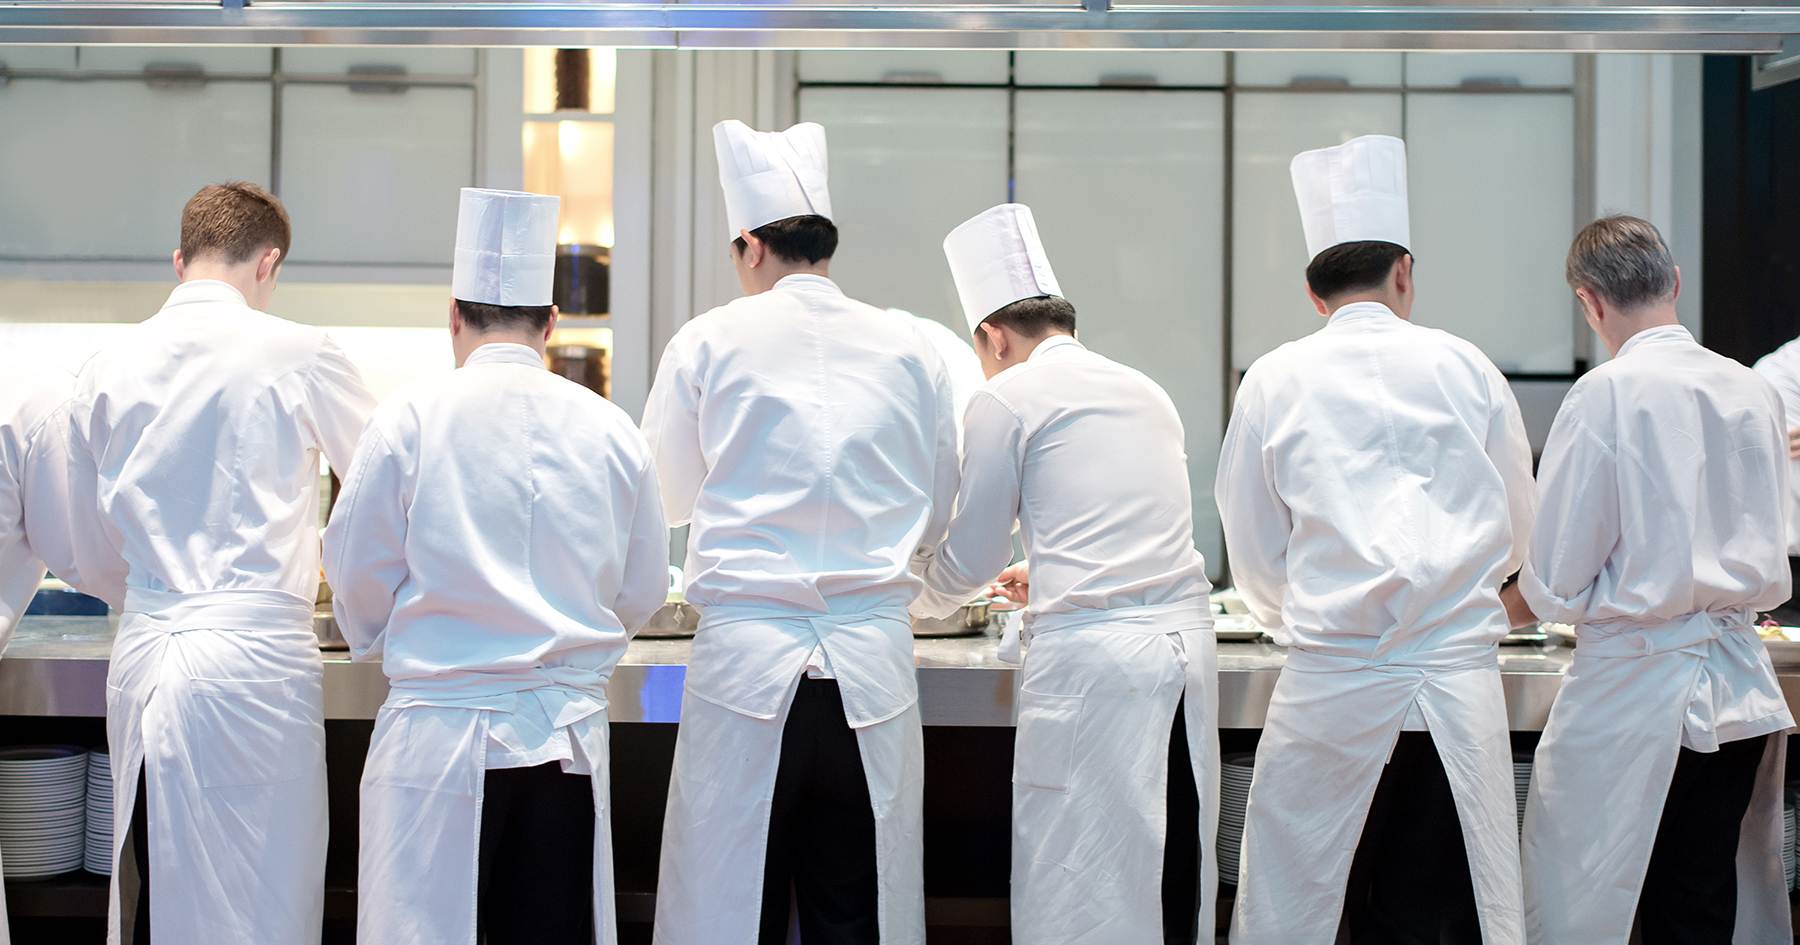 Well-known chefs band together to demand government action on business interruption coverage